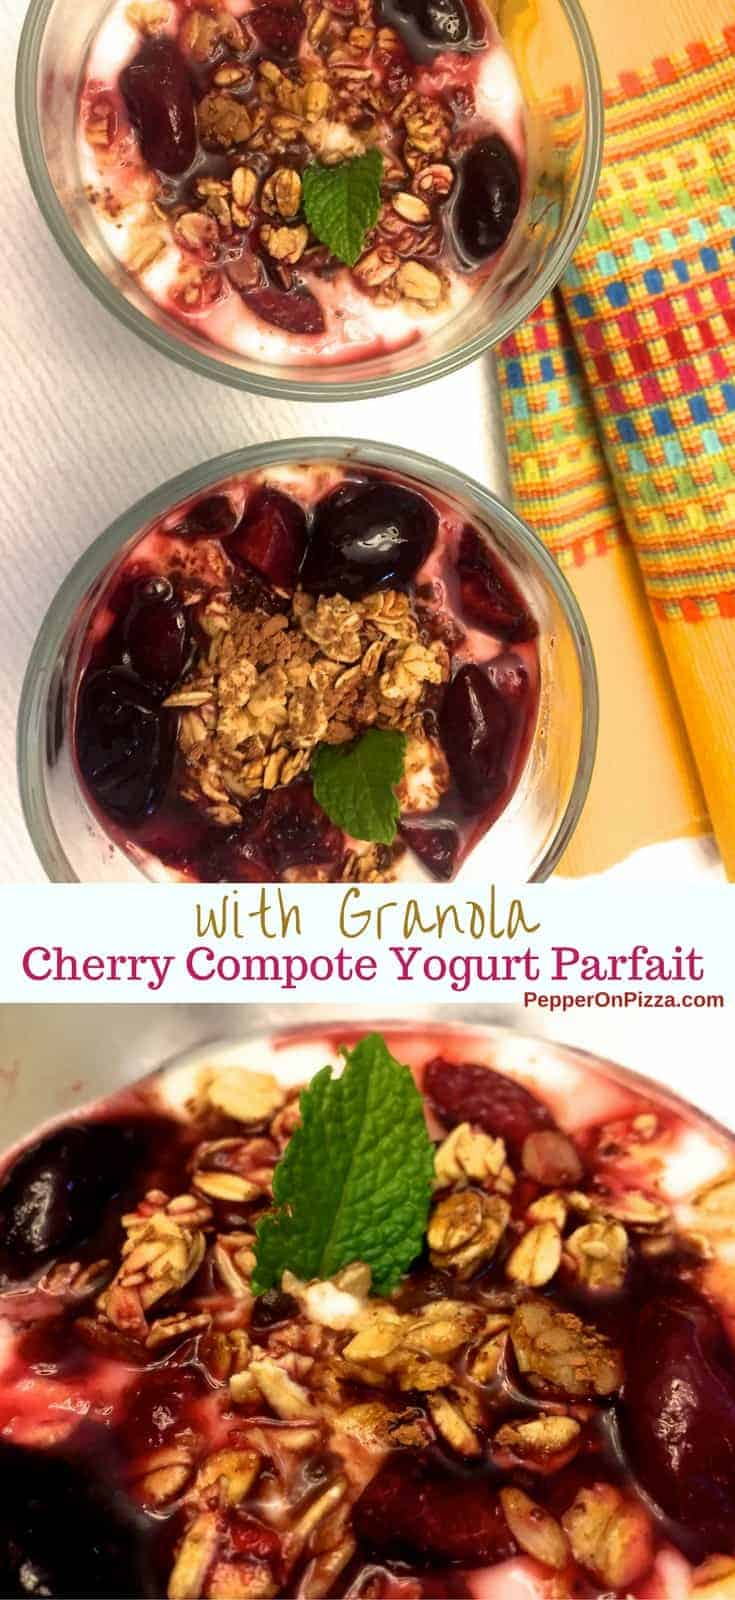 Easy to make, delicious Cherry Compote Yogurt Parfait with Granola.Yogurt layered with cherries, granola or nuts, cocoa powder and Cherry Compote topping.